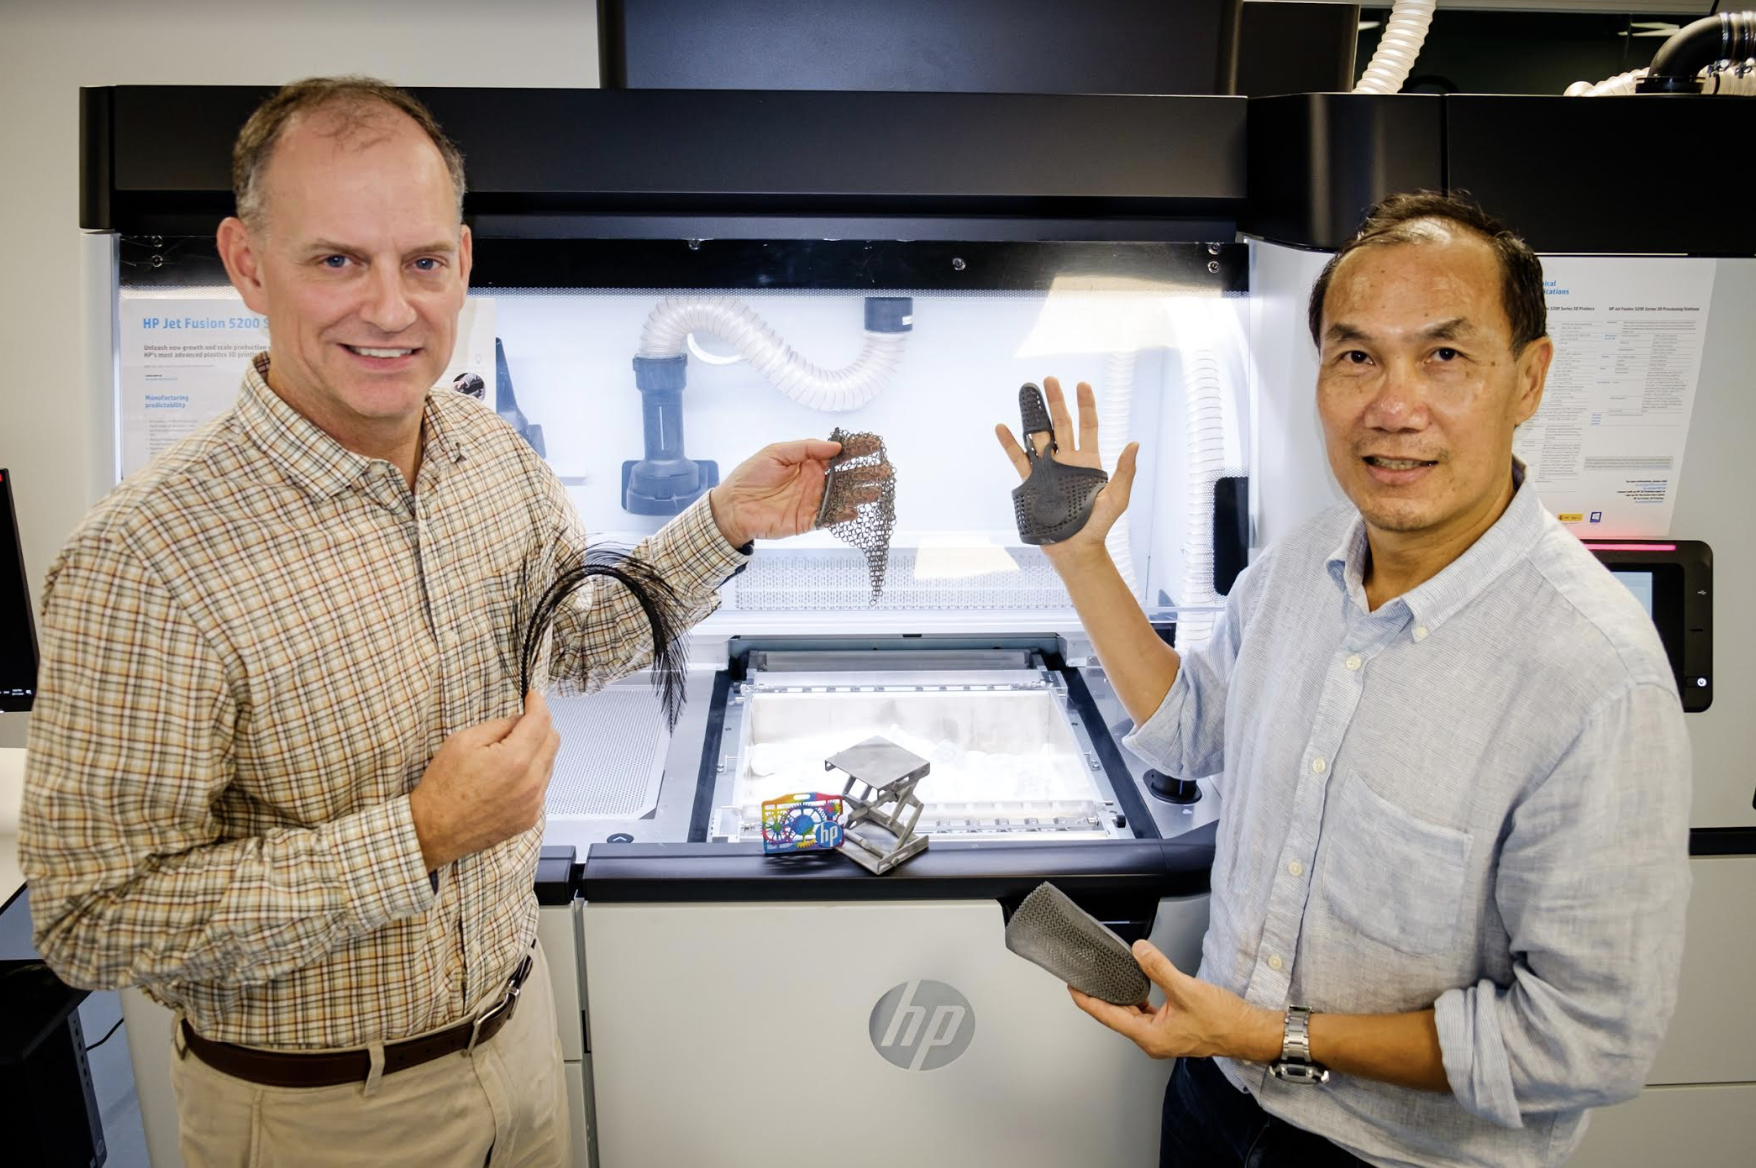 Co-directors of the HP-NTU Corporate Lab, NTU Associate Professor Tan Ming Jen (right) and Mike Reagan (left) holding up 3D-printed products from HP Jet Fusion printers which can include colour as well as print in complex shapes and with different material properties. Photo courtesy: HP